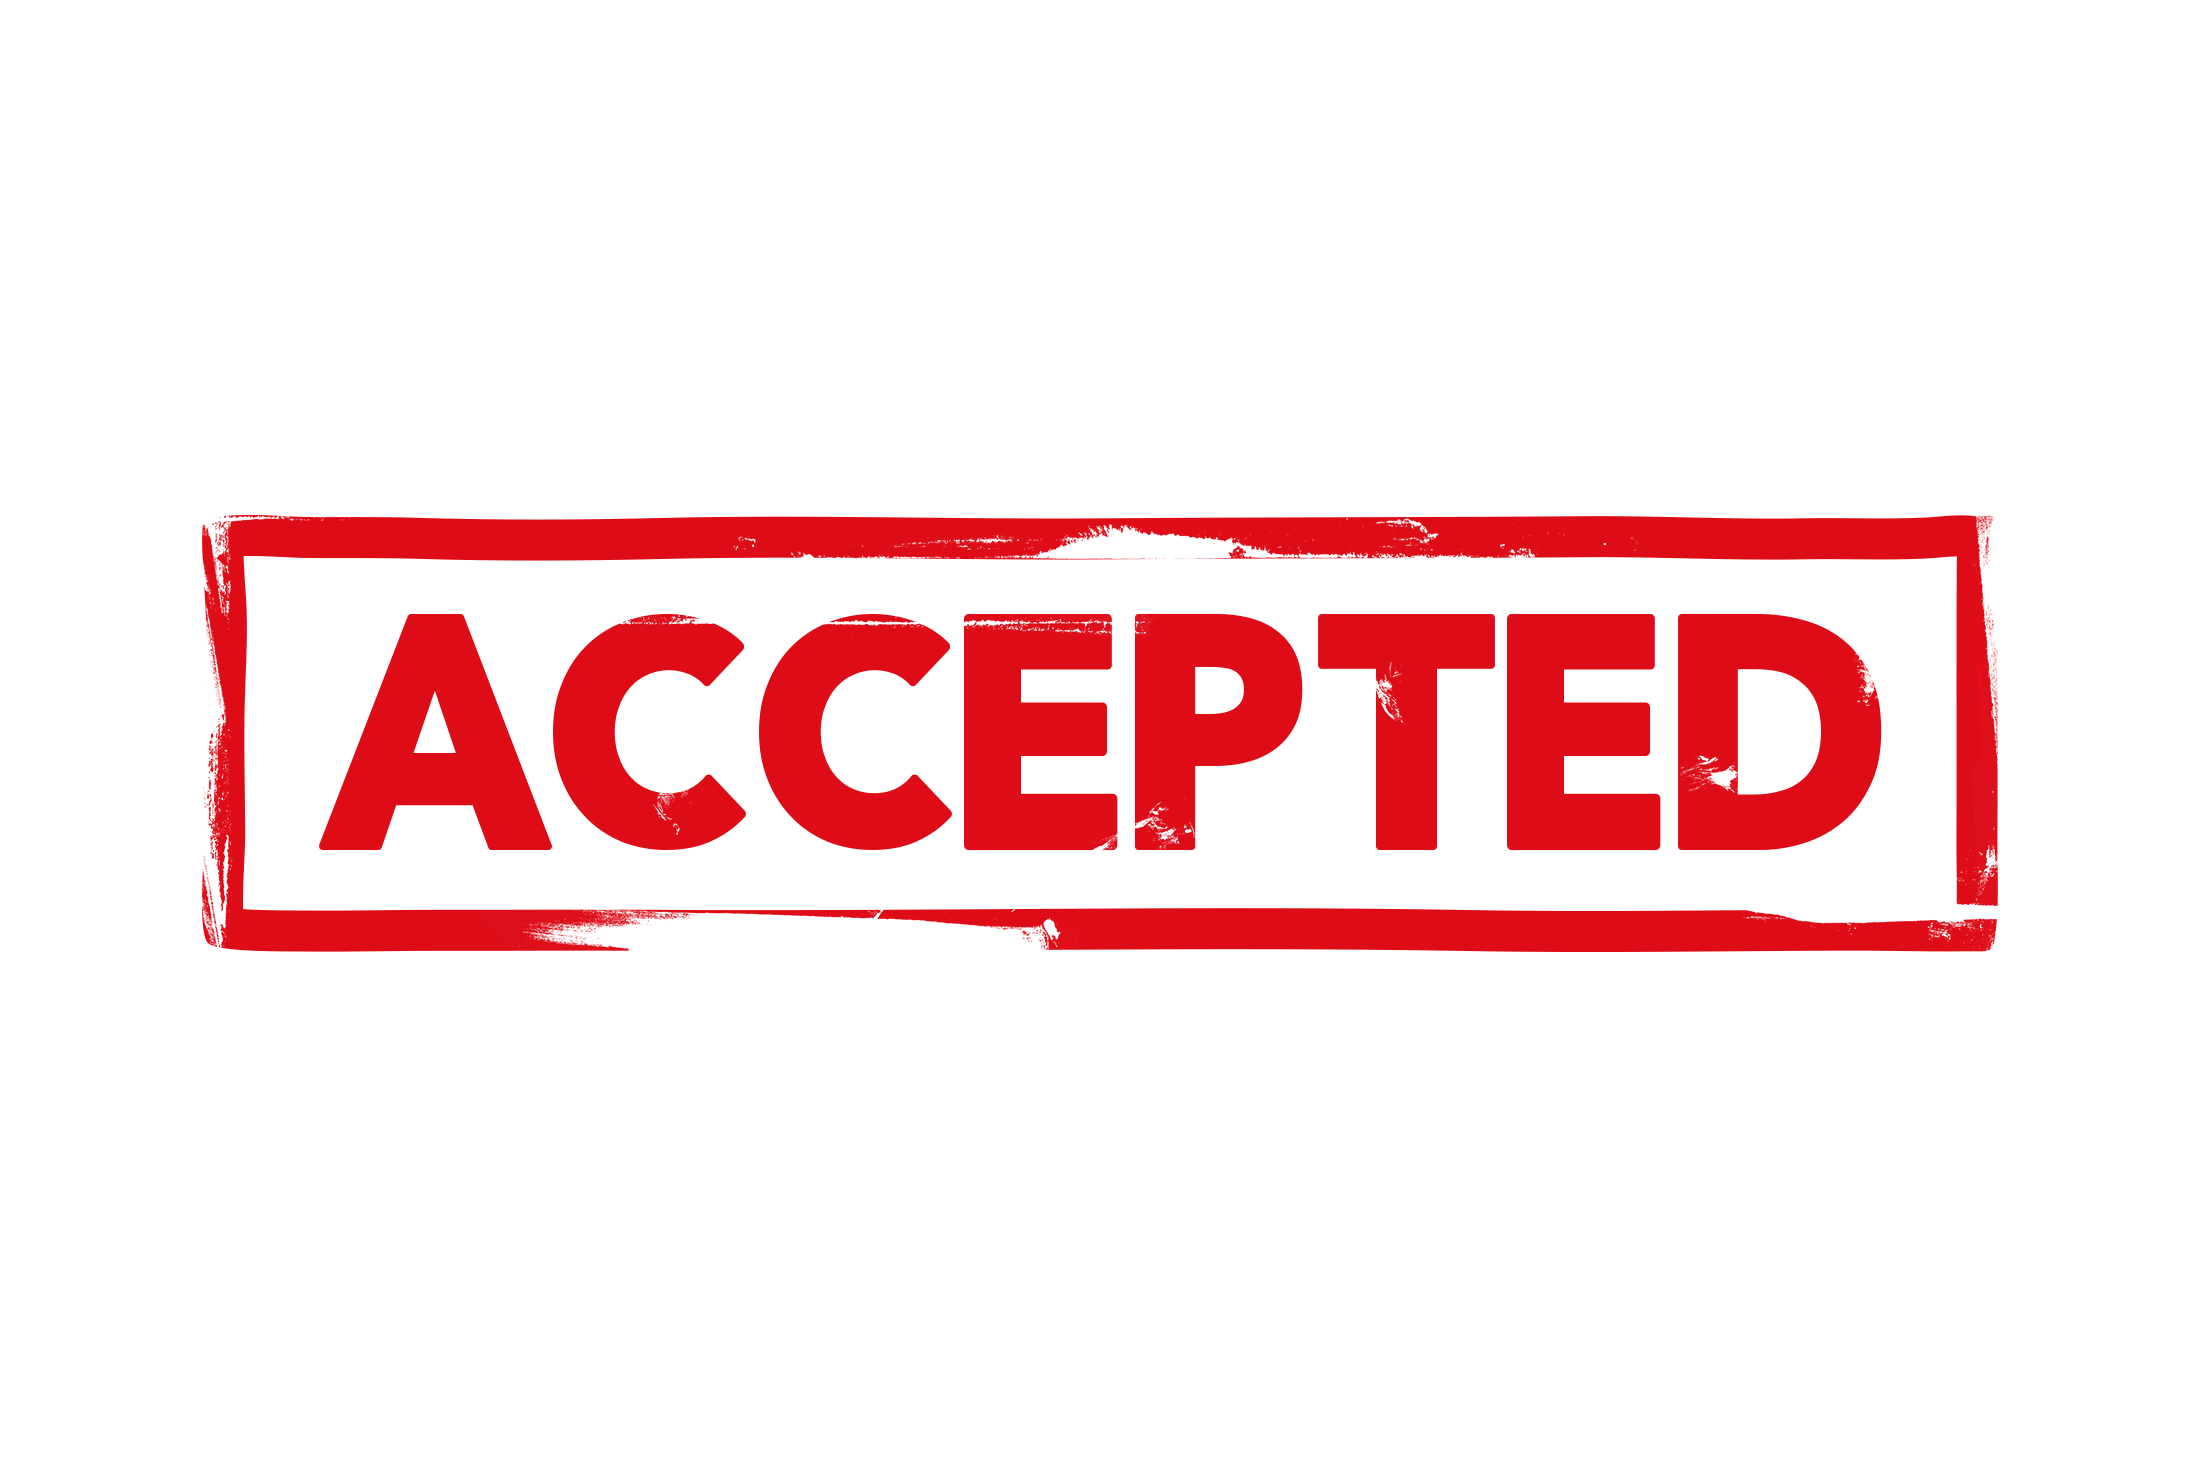 Accepted stamp PSD